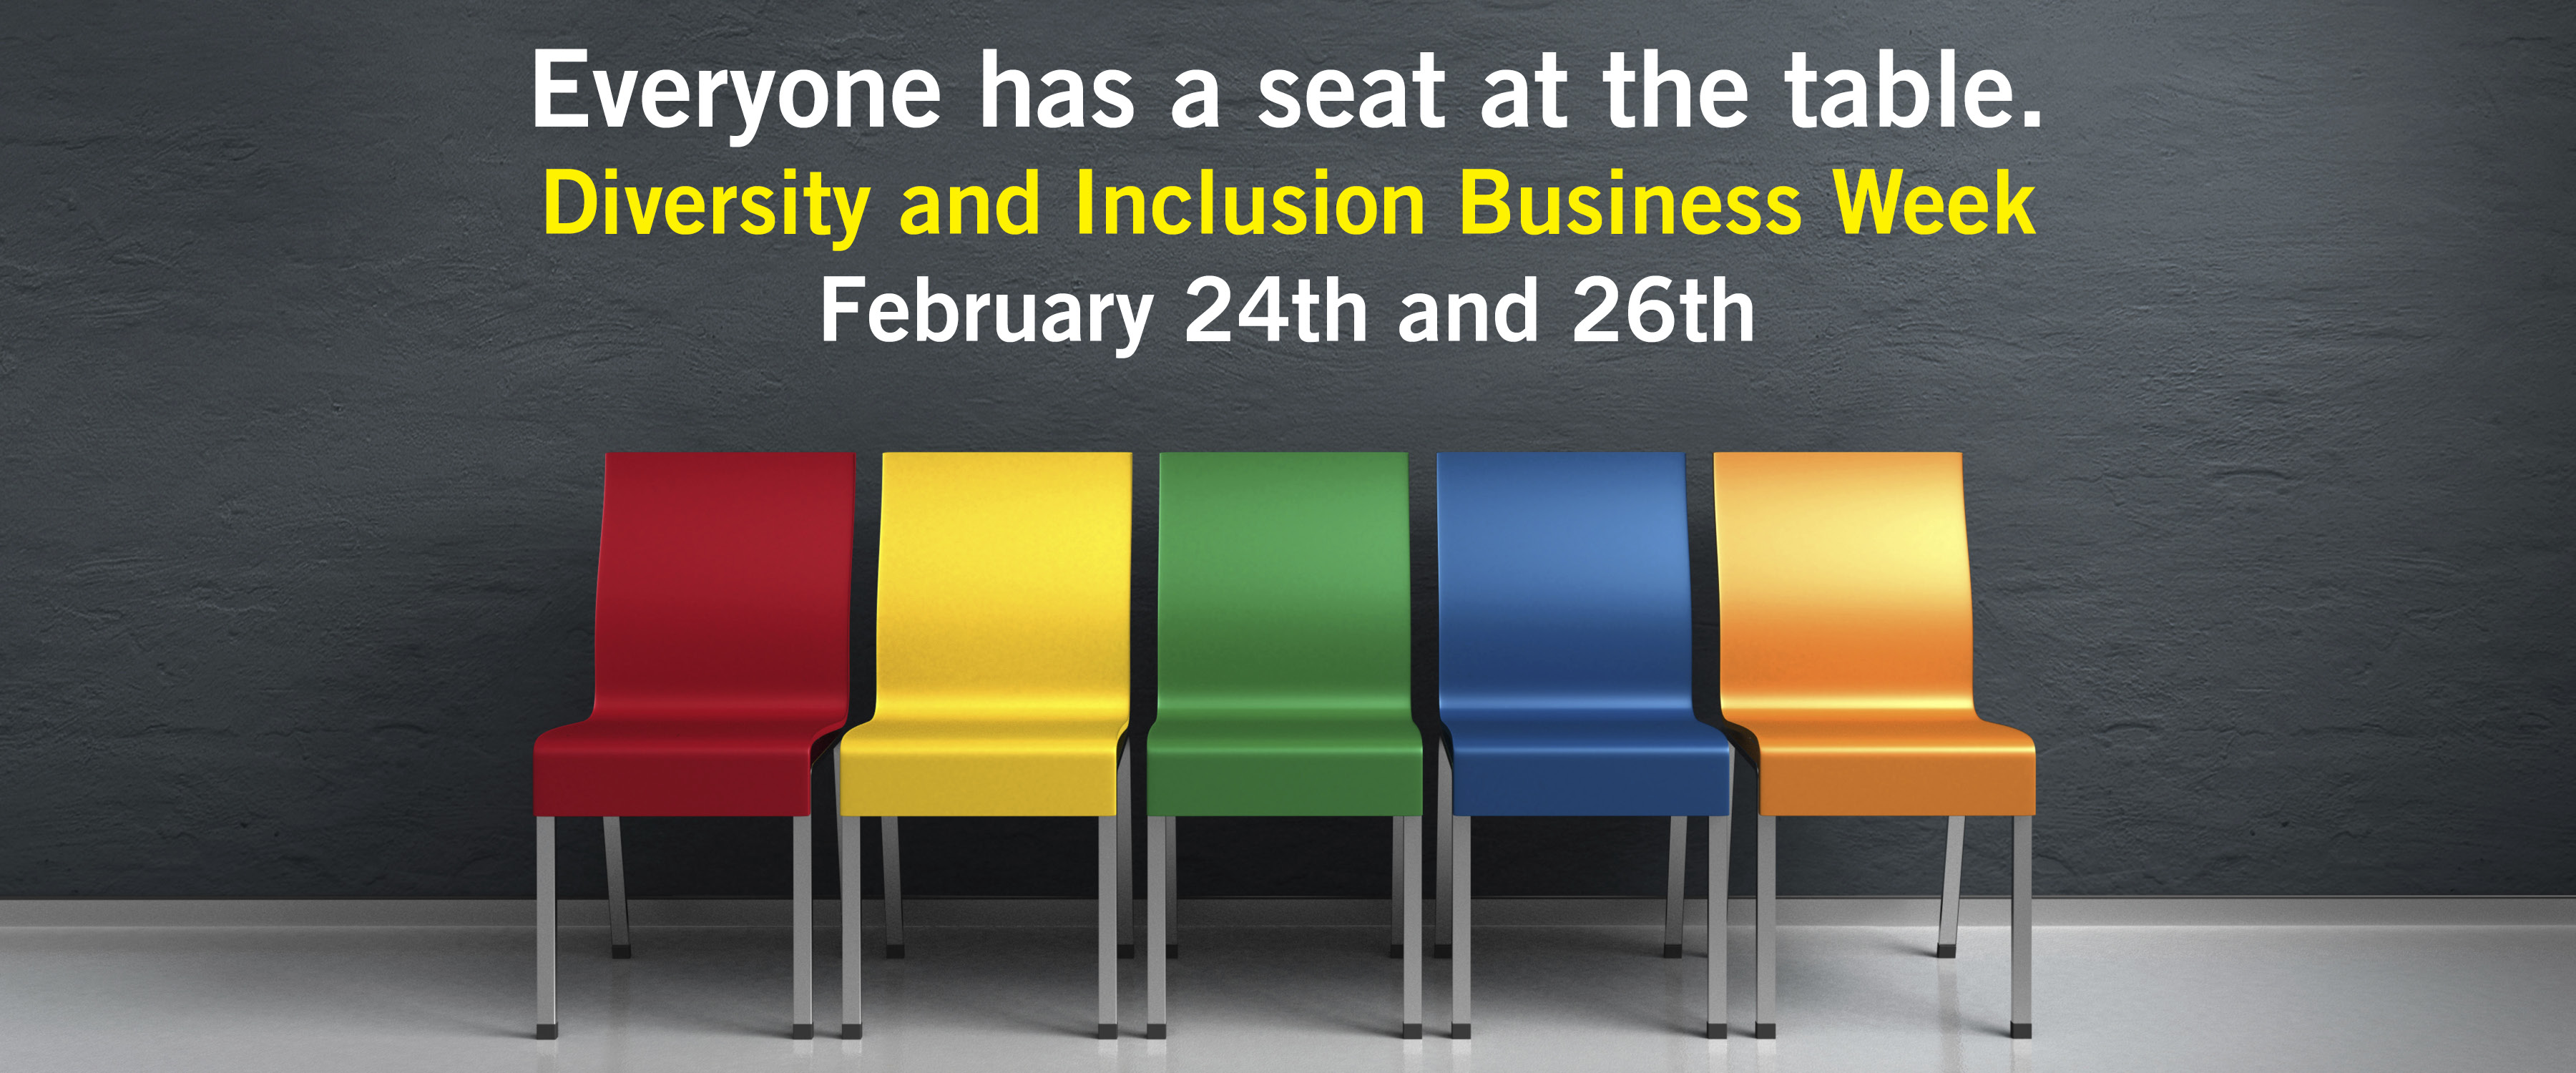 Diversity and Business Inclusion Week